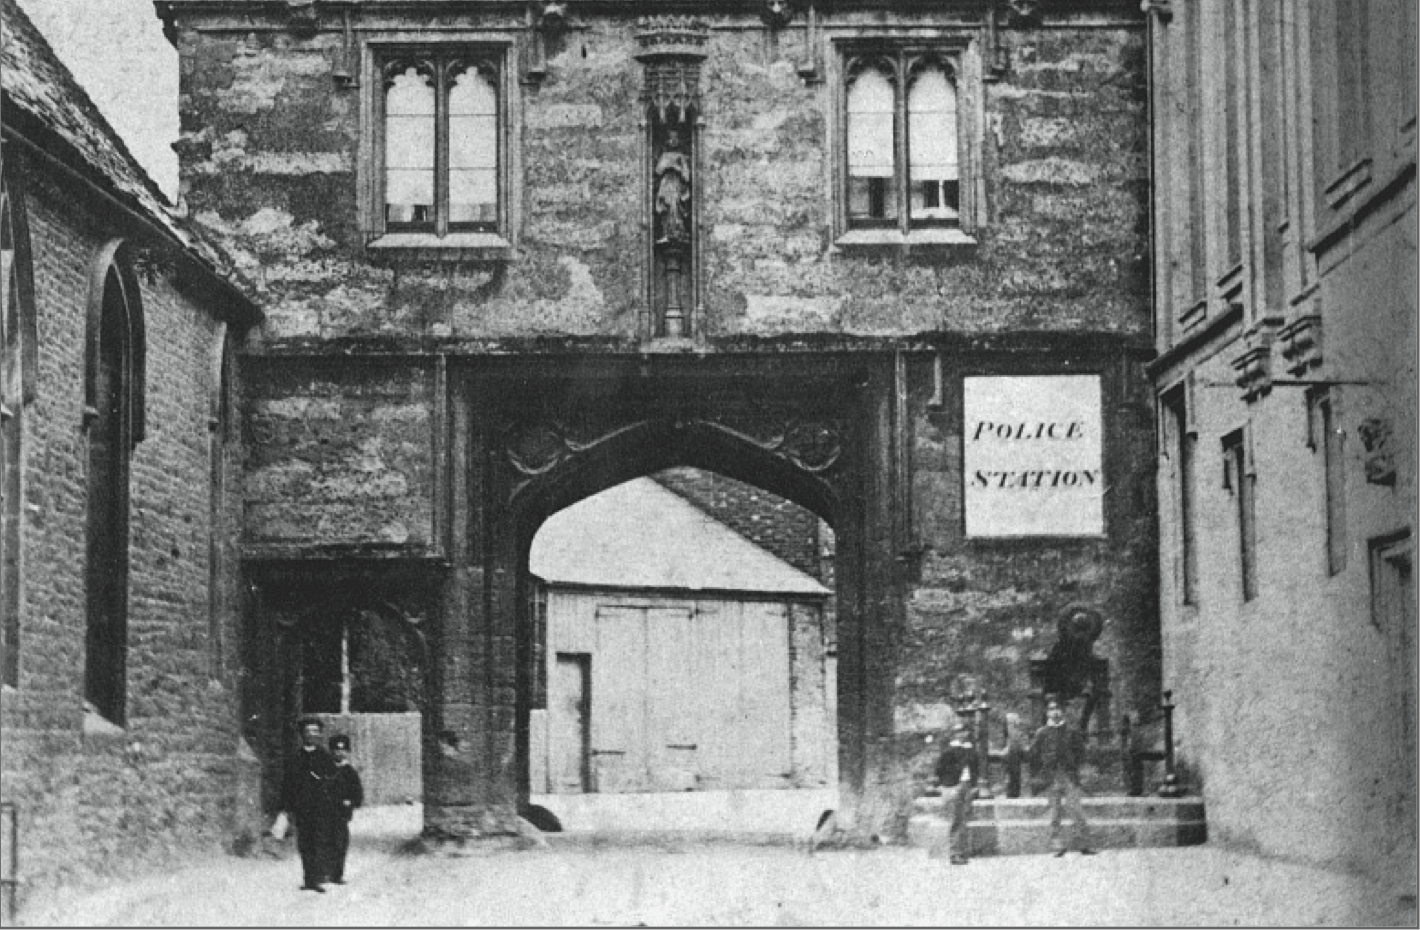 The Abbey Gateway in about 1860. The cannon is a relic of the Crimean War.